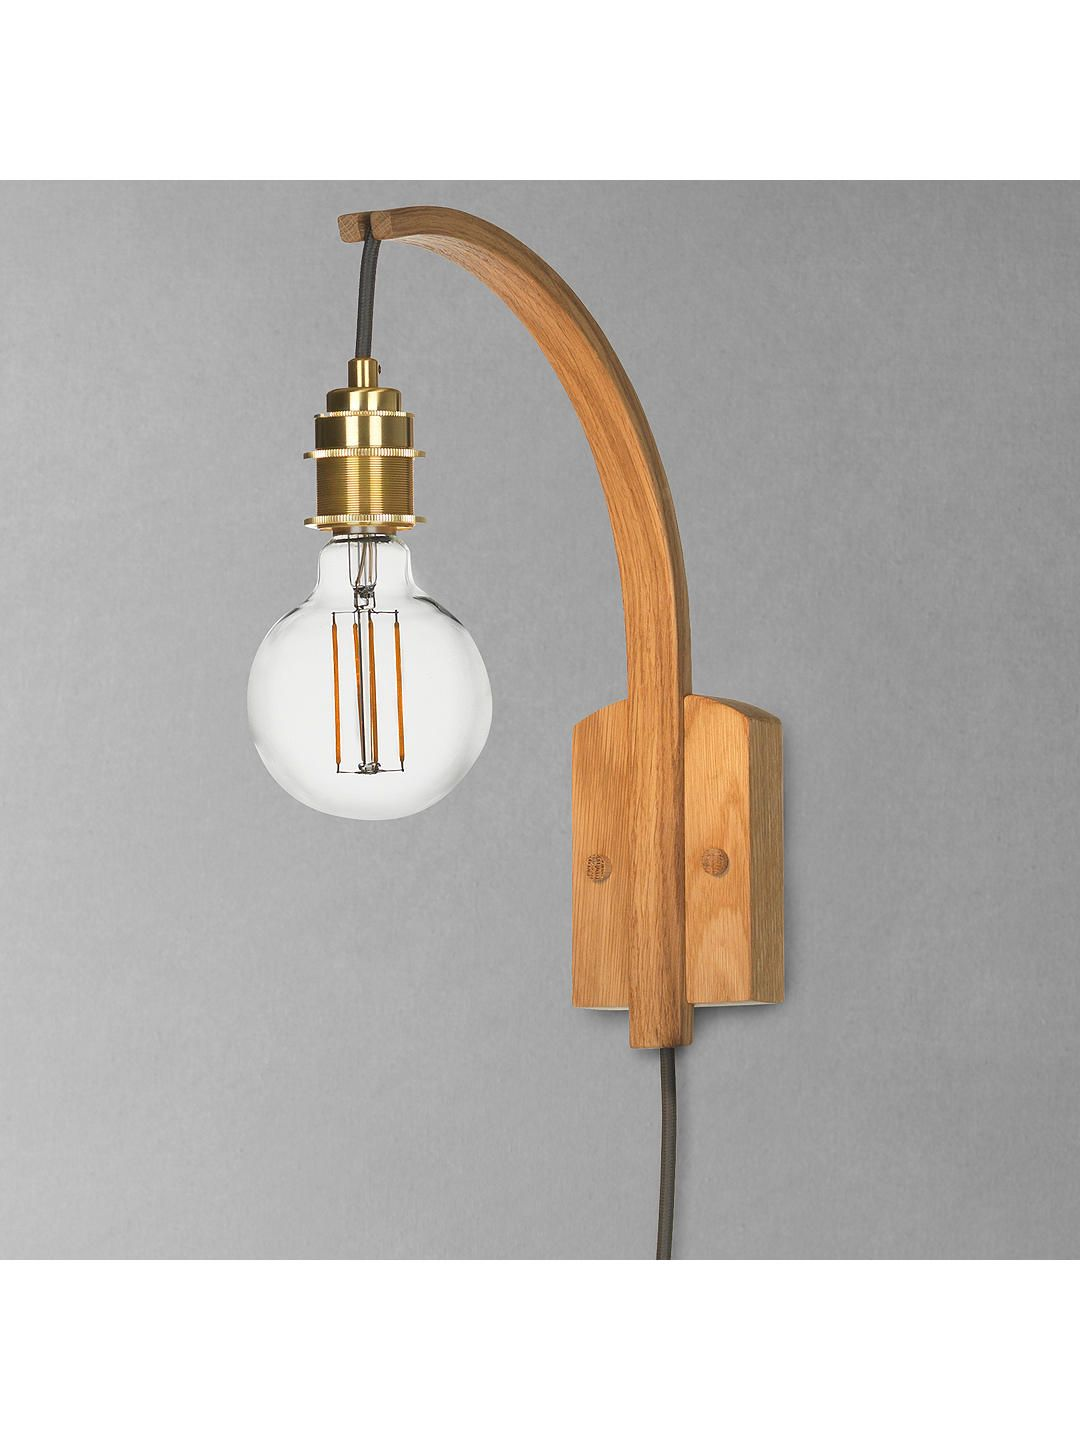 Tom Raffield Hanter Wall Light Oak Wall Lights Tom Raffield Tom Raffield Lighting